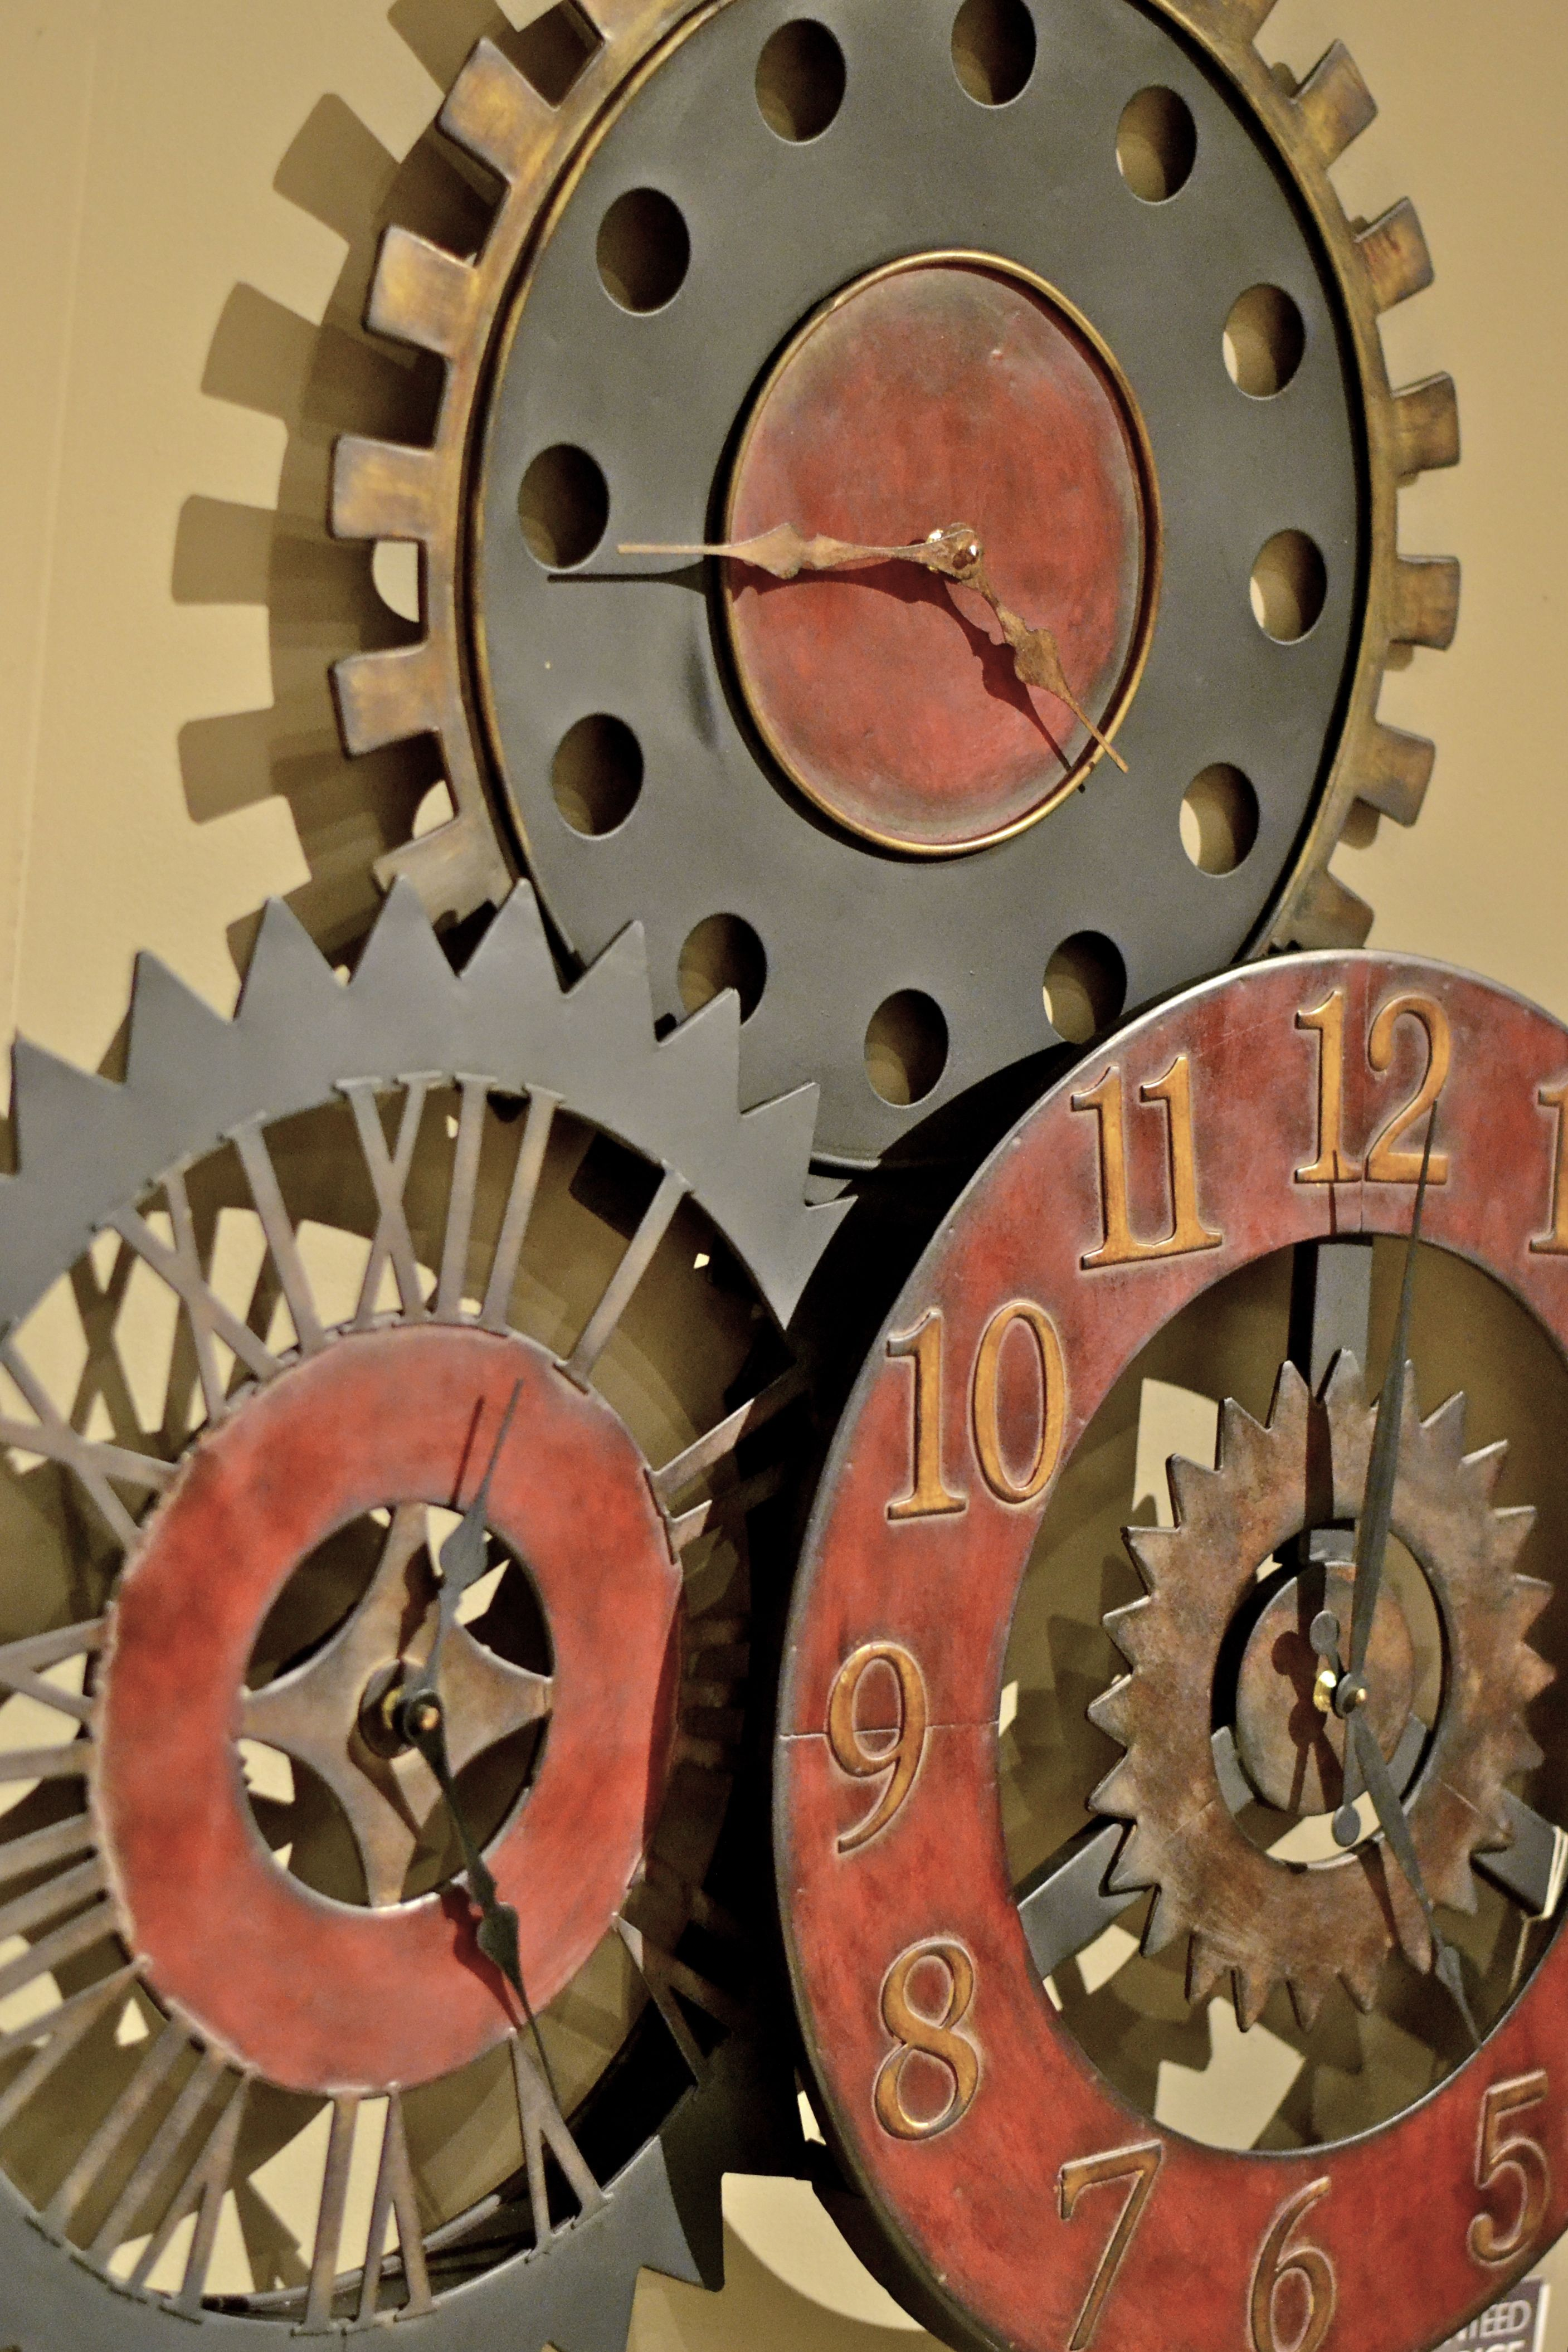 Steampunk wall clock from star furniture for 35 bucks less than steampunk wall clock from star furniture for 35 bucks less than amazon amipublicfo Images